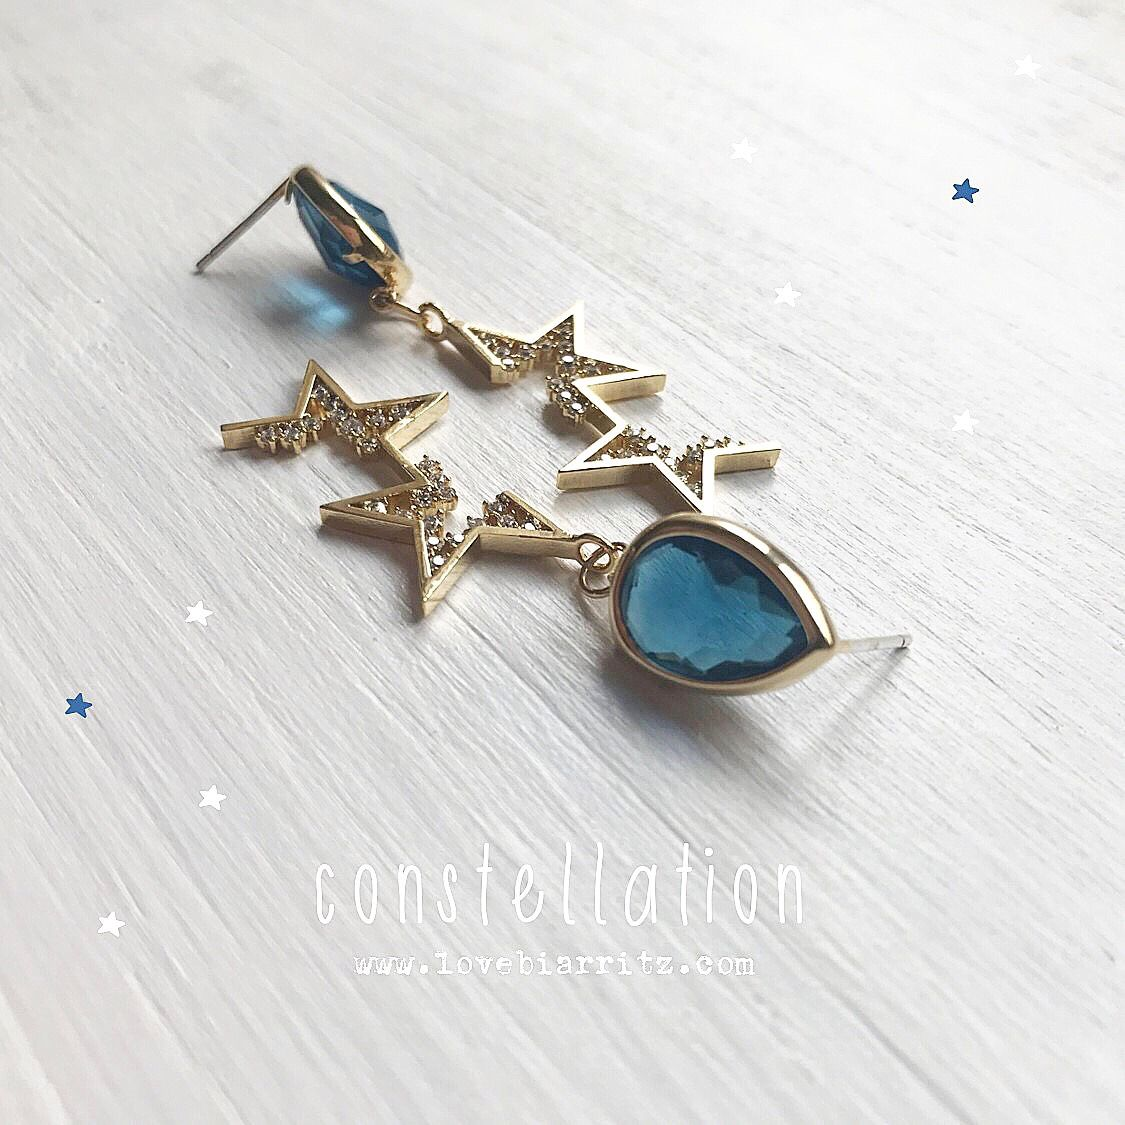 Stars constellation jewelry @lovebiarritz